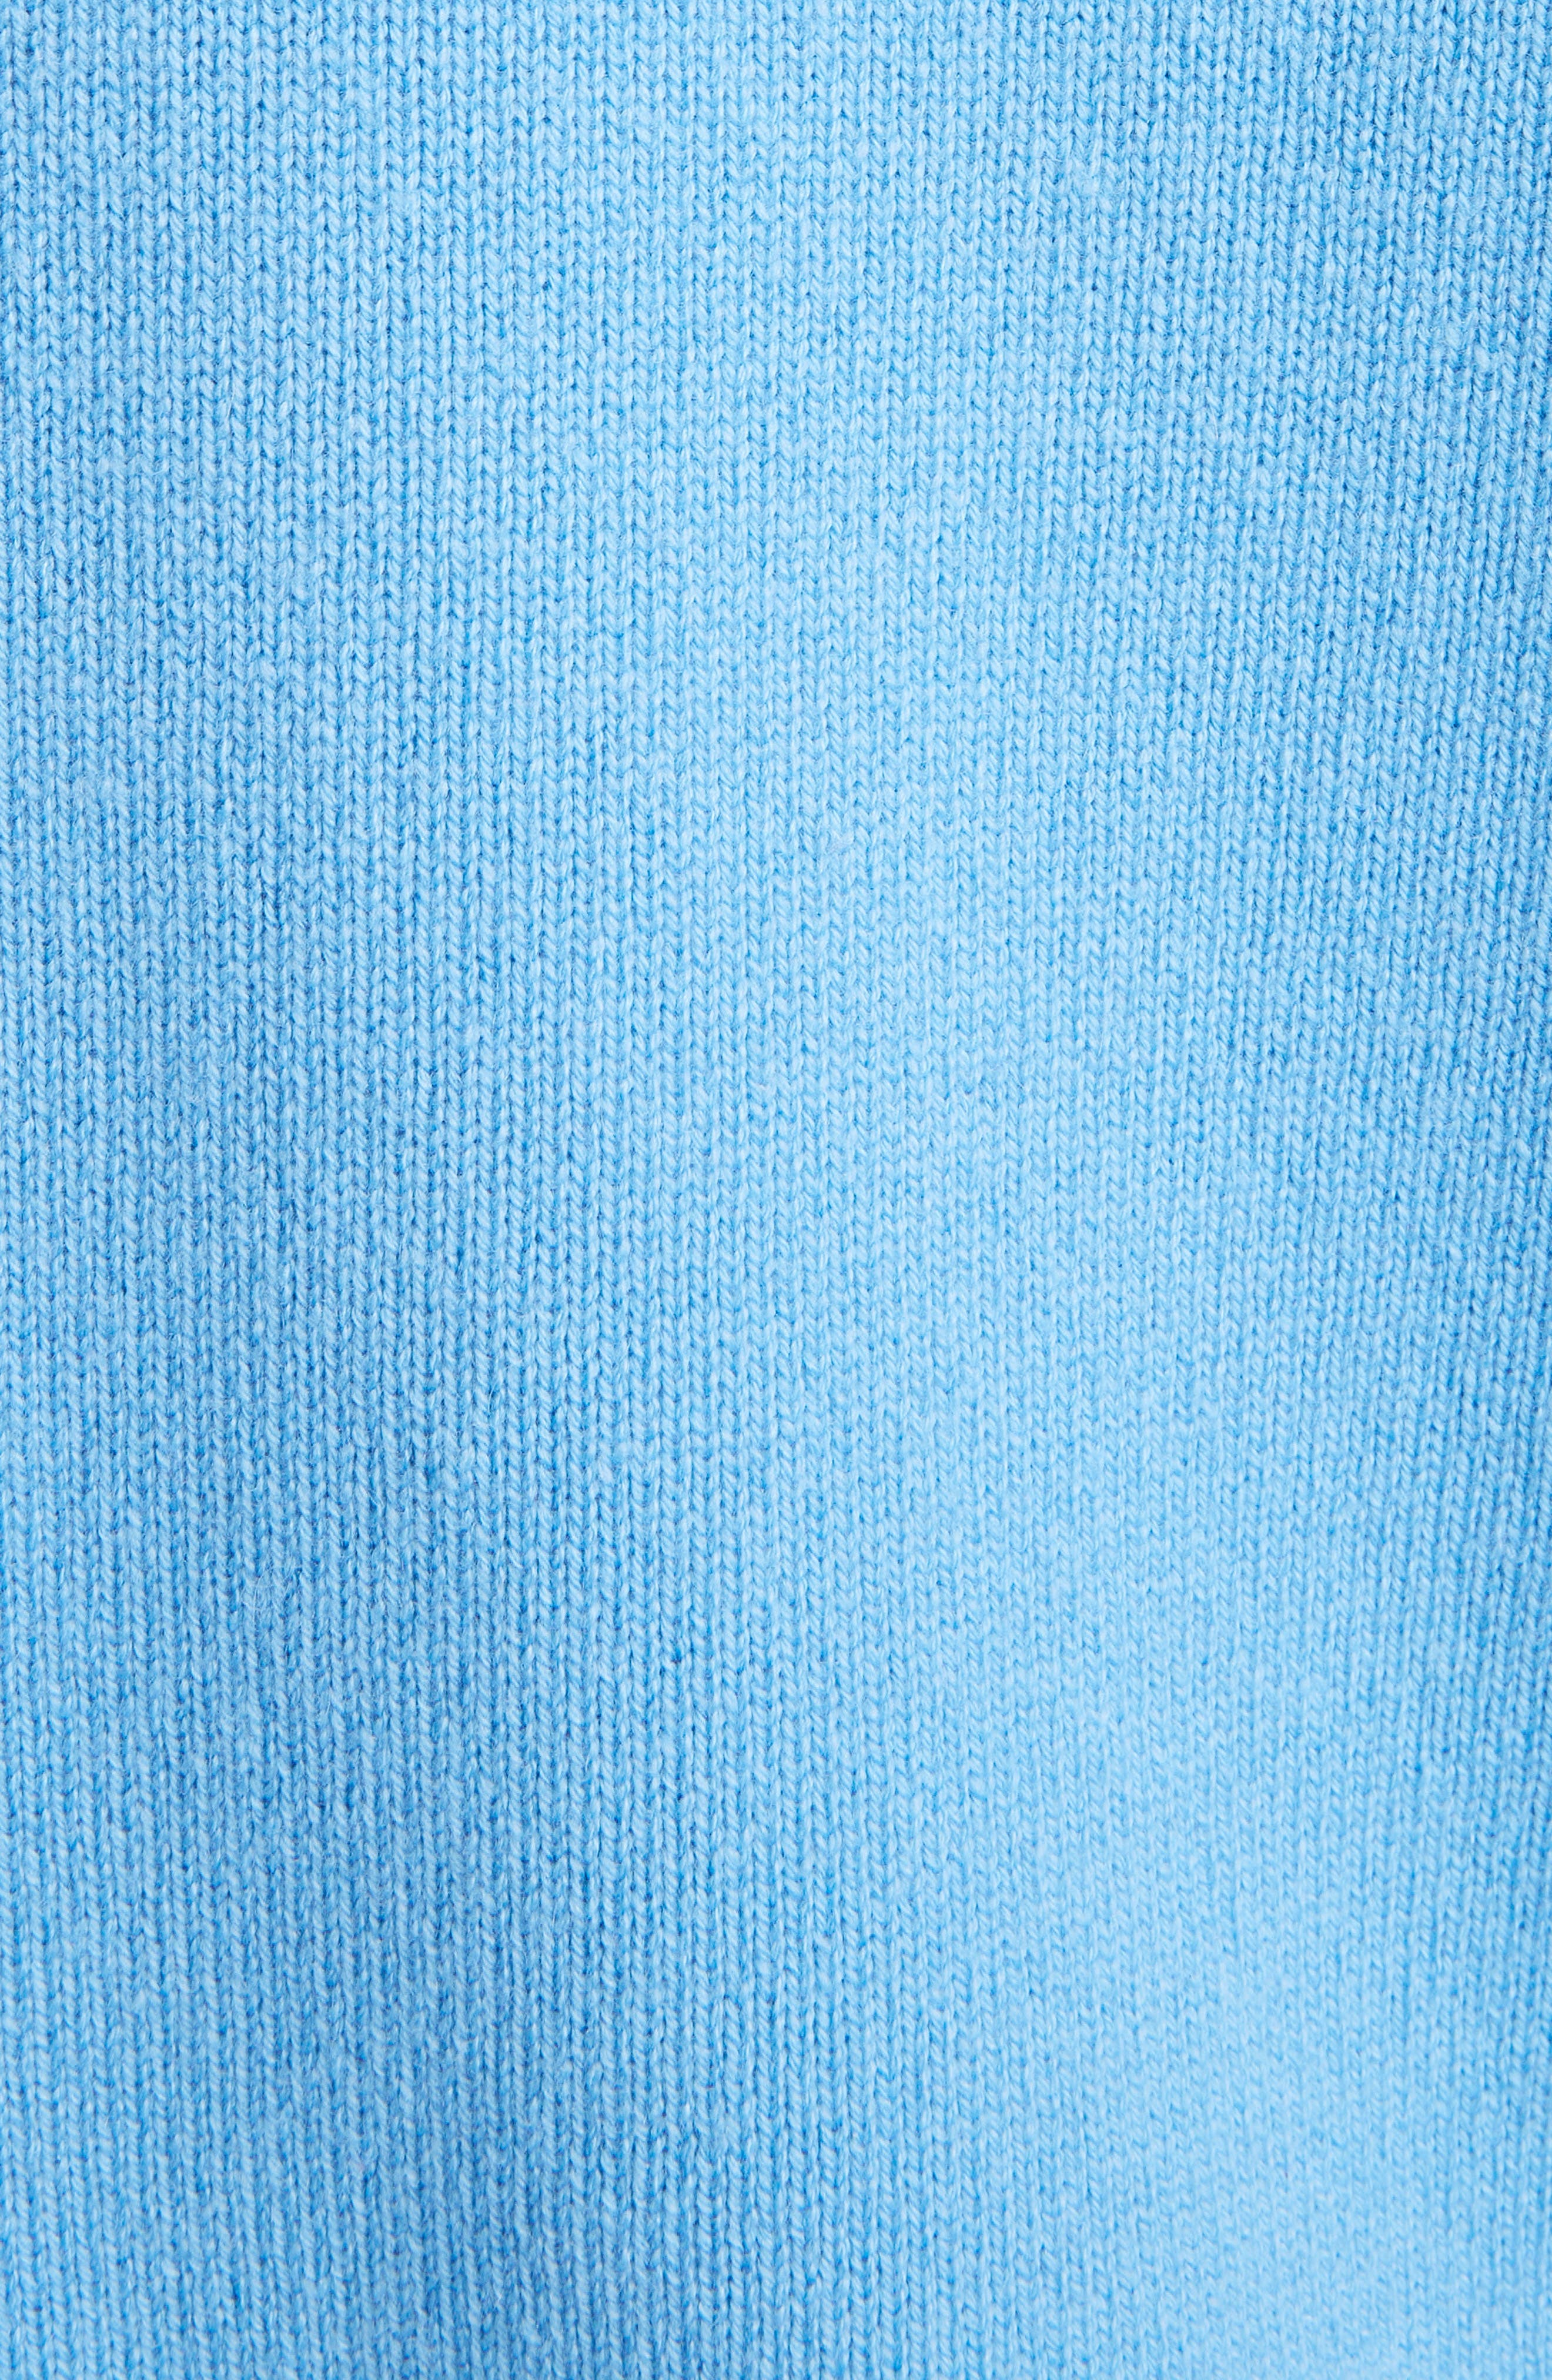 Relaxed Cashmere Sweater,                             Alternate thumbnail 5, color,                             400